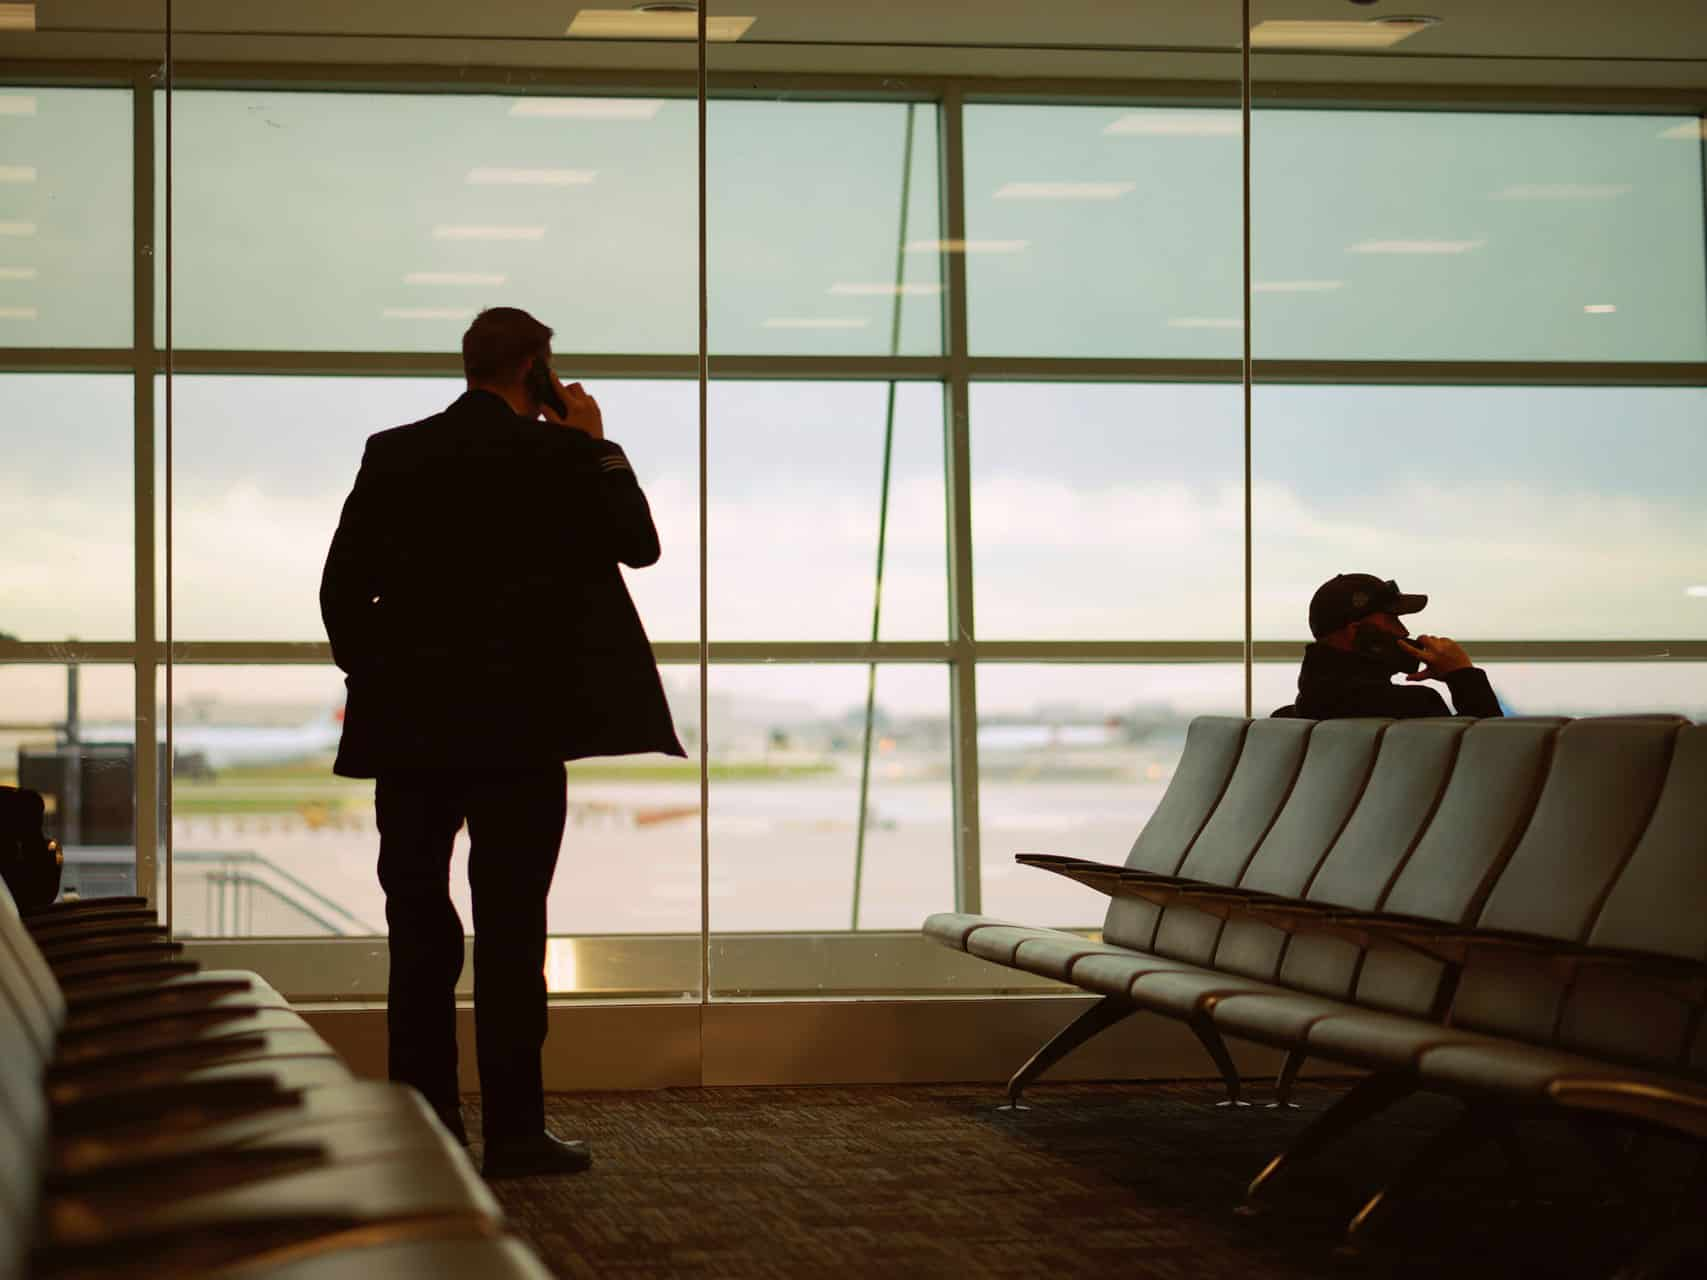 Man In Airport Waiting For Corporate Event Travel